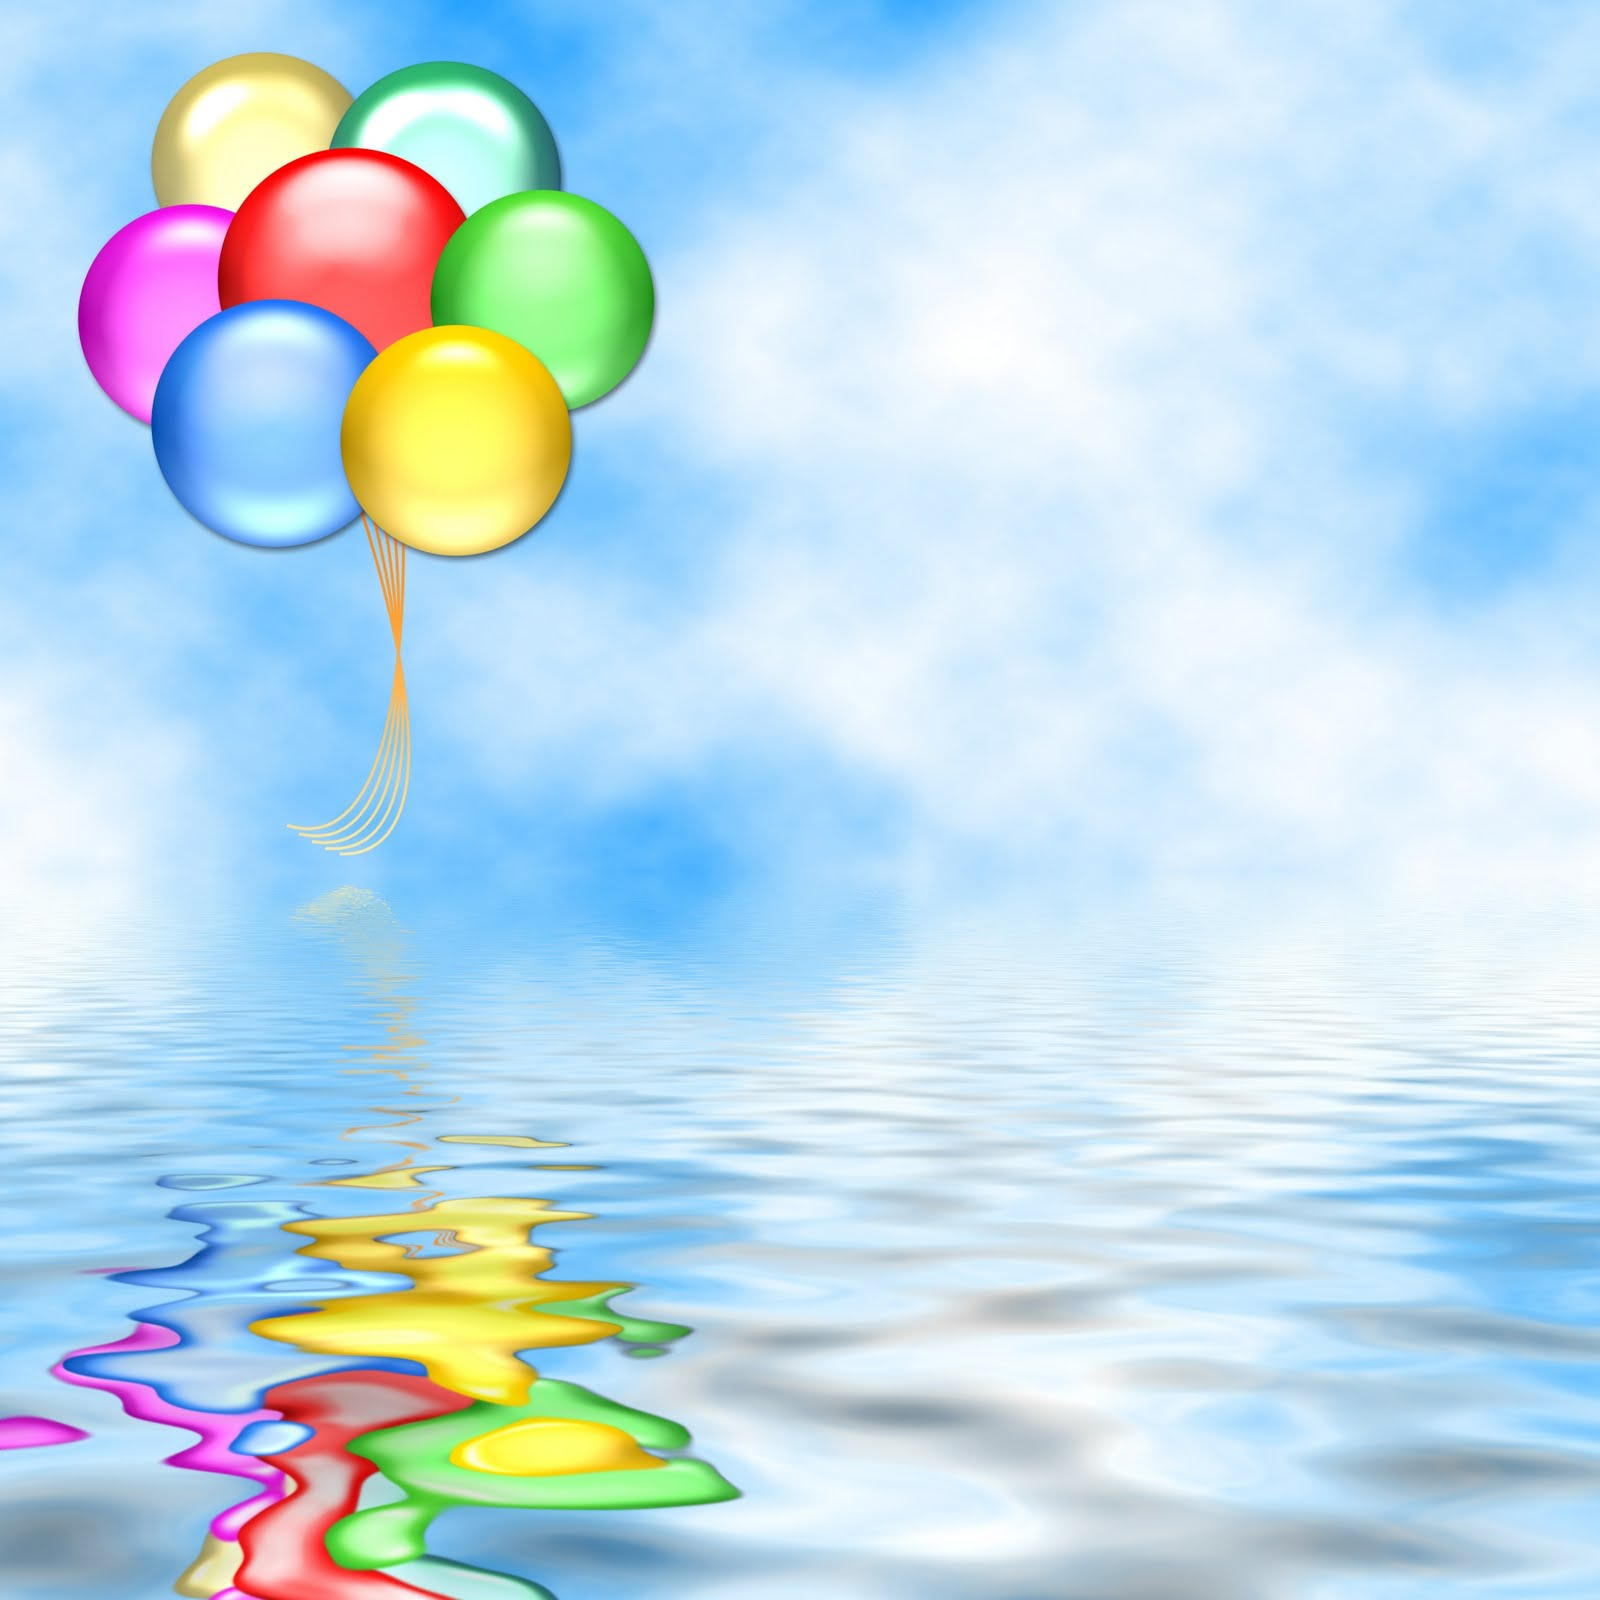 birthday background images for photoshop ; Birthday+balloon+backgrounds+2